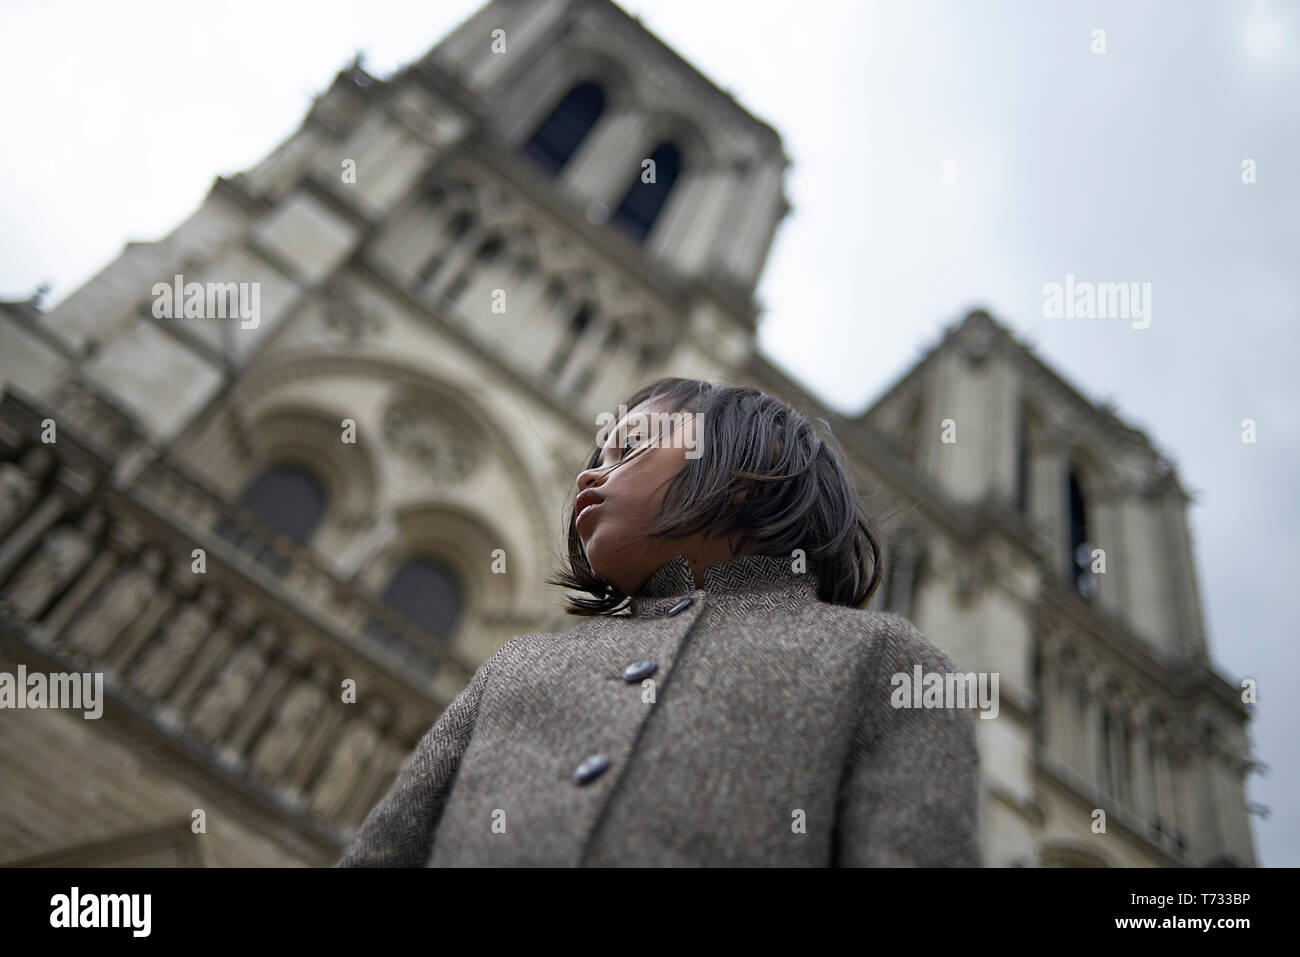 Portrait of a cute young Asian girl posing in front of the Notre Dame cathedral in Paris with dark clouds overhead - Stock Image